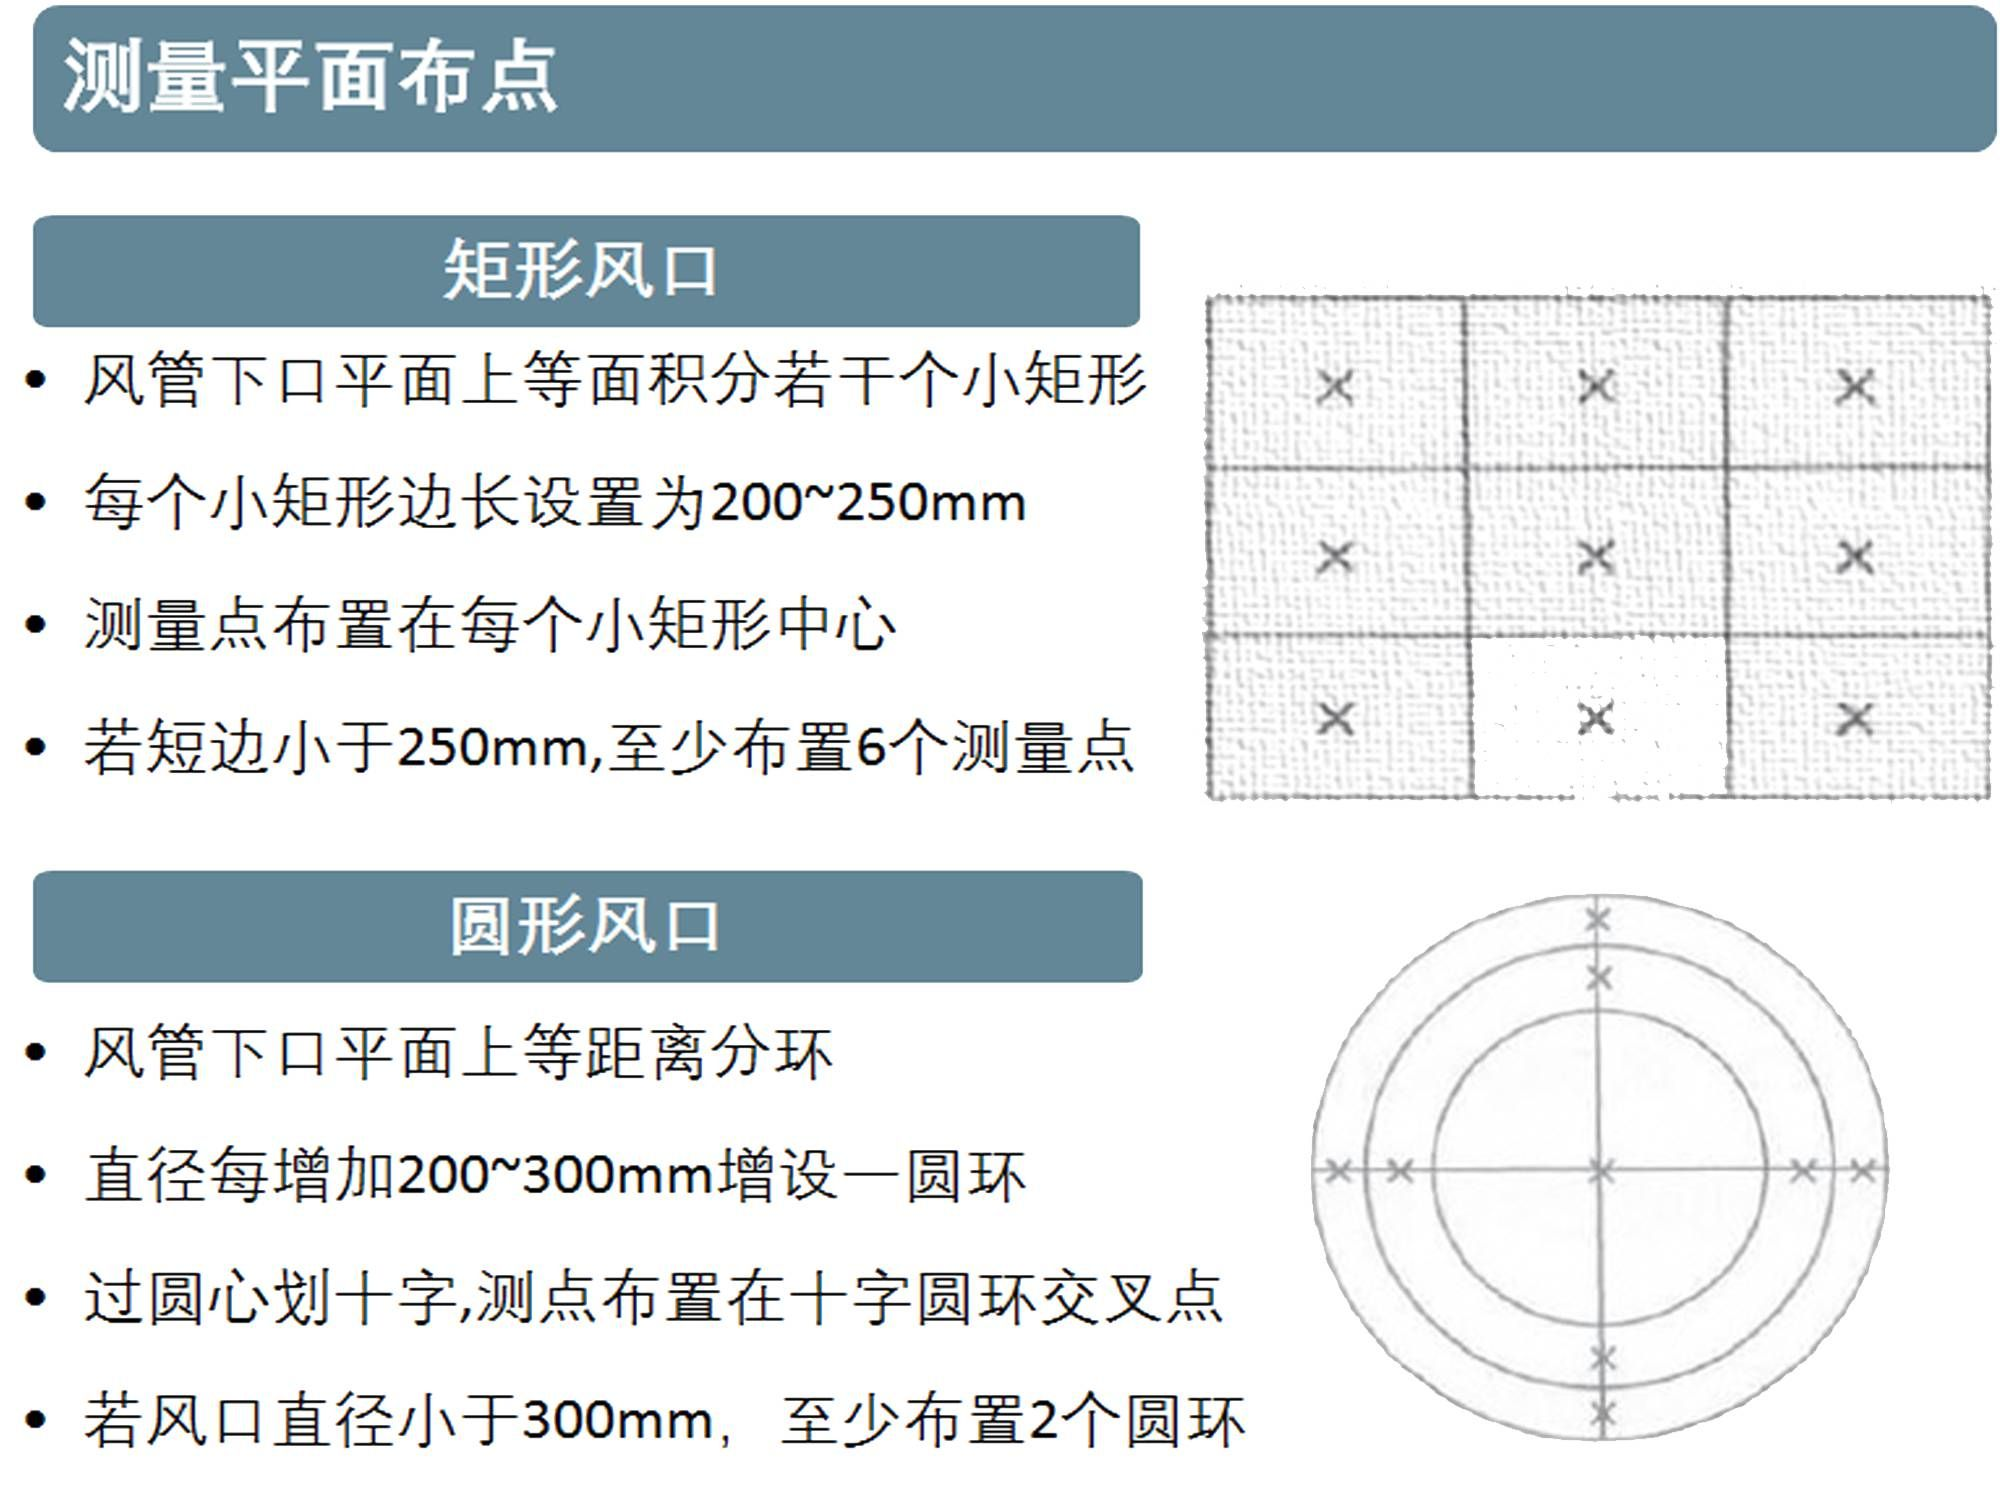 cn-20170928-applications-hvacr-indoor-air-quality07.png